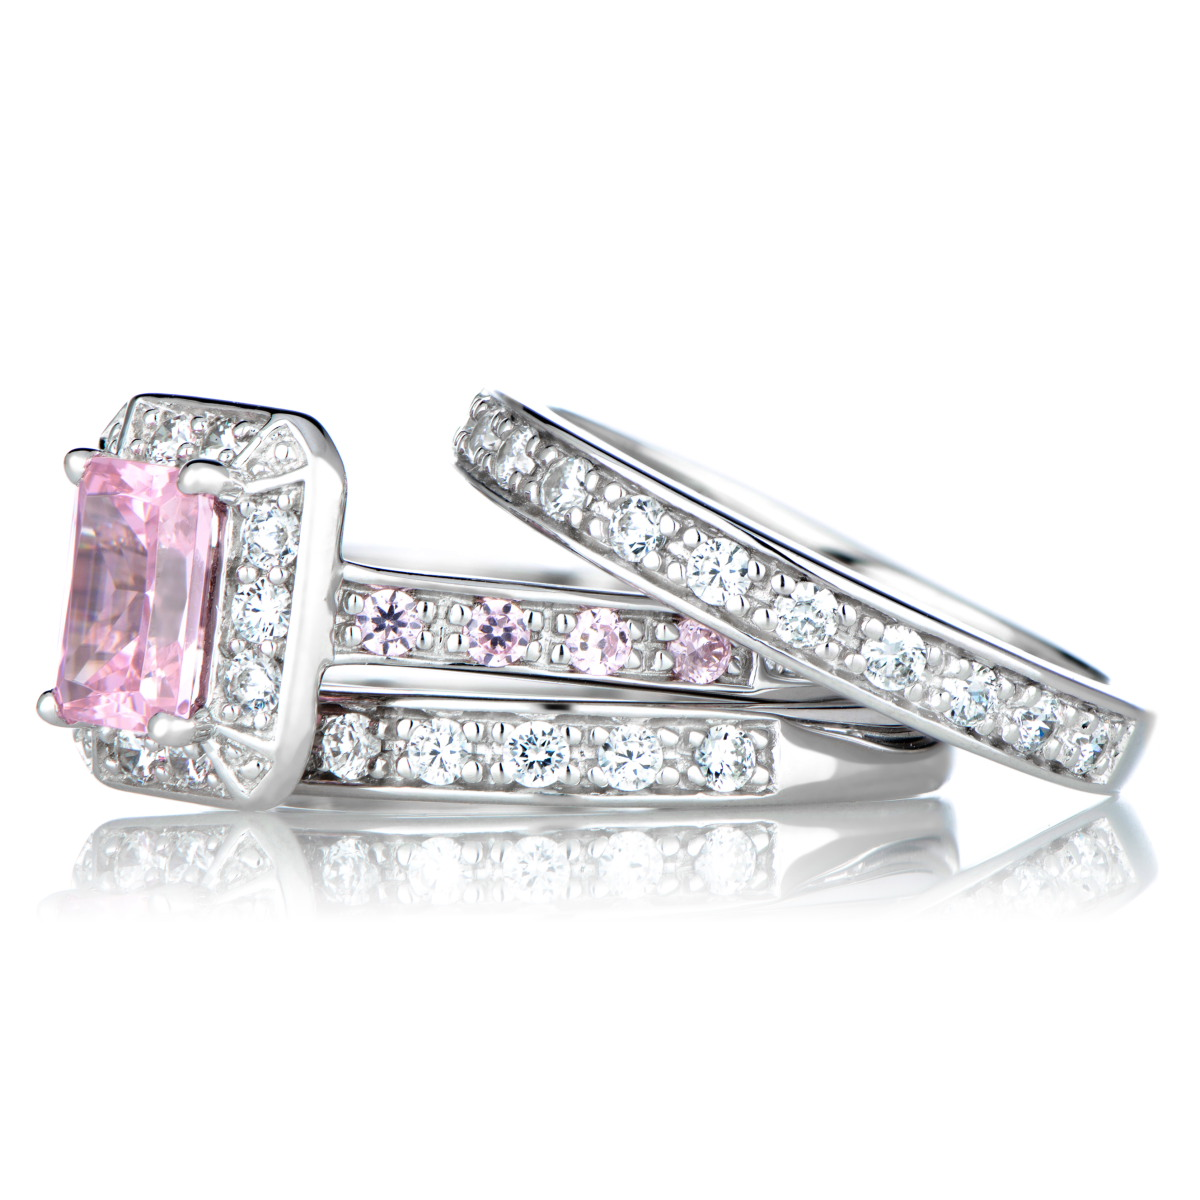 pink cz wedding ring set cubic zirconia wedding rings Pink Cubic Zirconia Wedding Ring Set